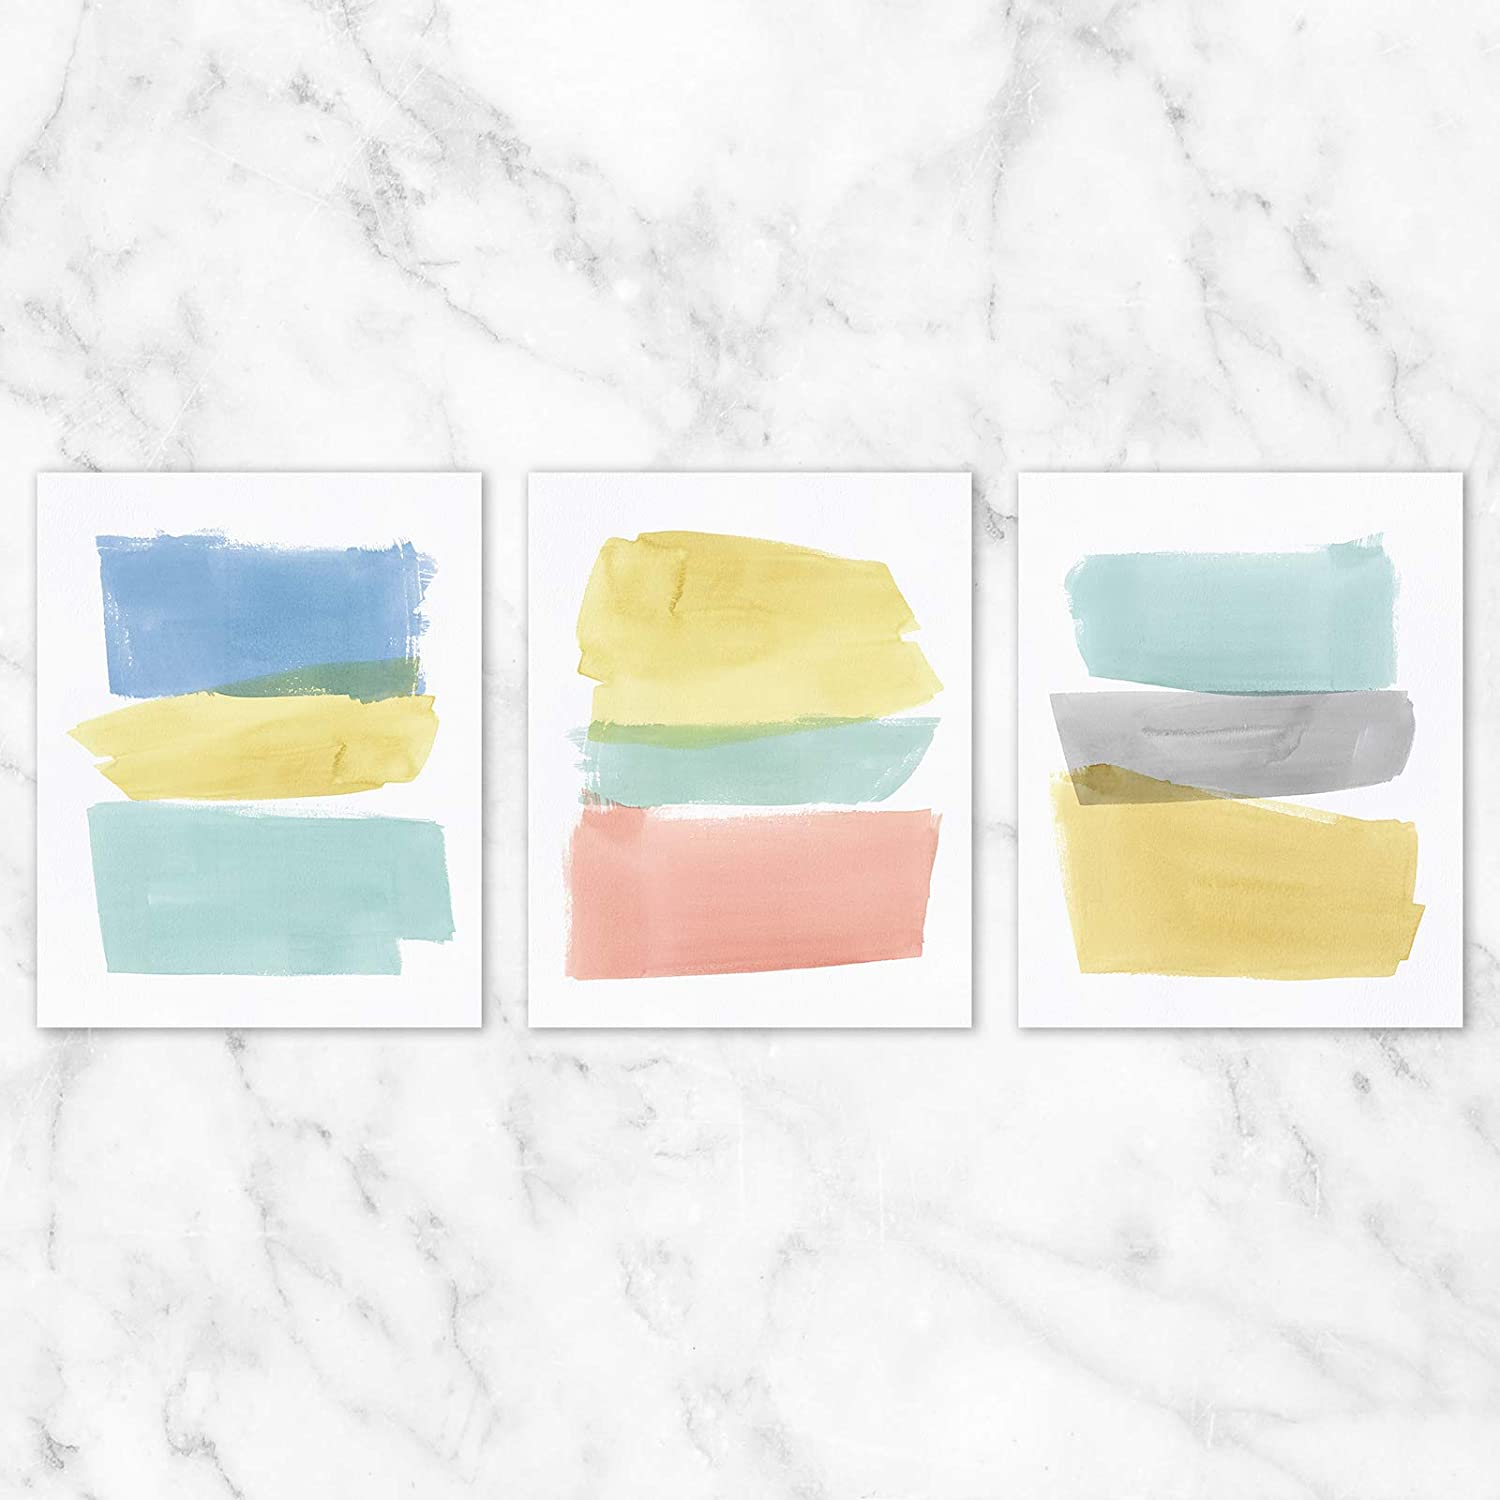 Amazon Com Pastel Abstract Wall Art Set Of 3 8x10 Prints On Linen Paper Unframed Posters